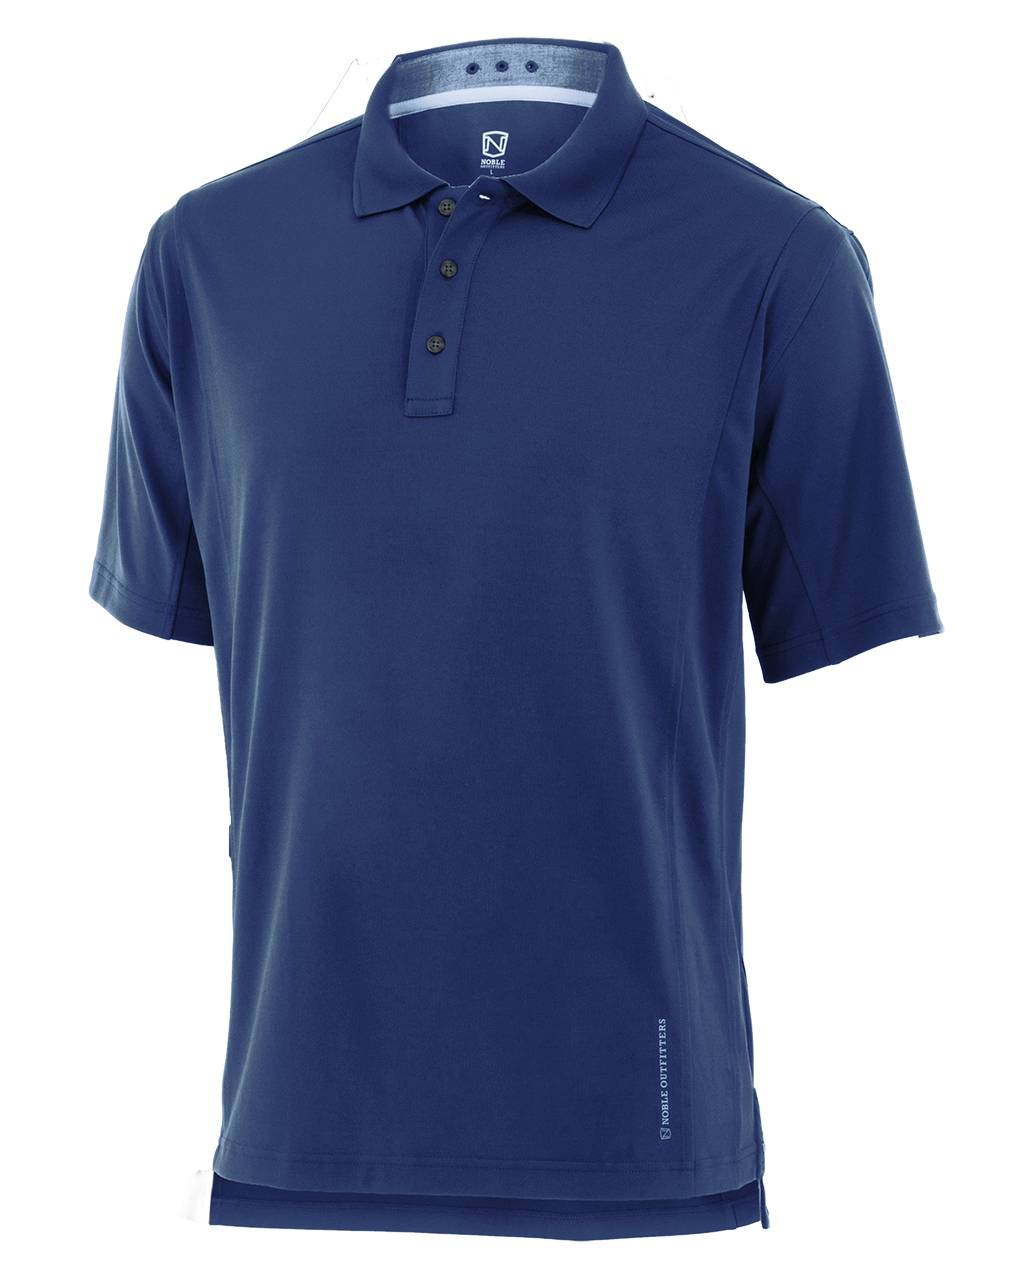 Noble Outfitters Coolflow Performance Polo - Mens